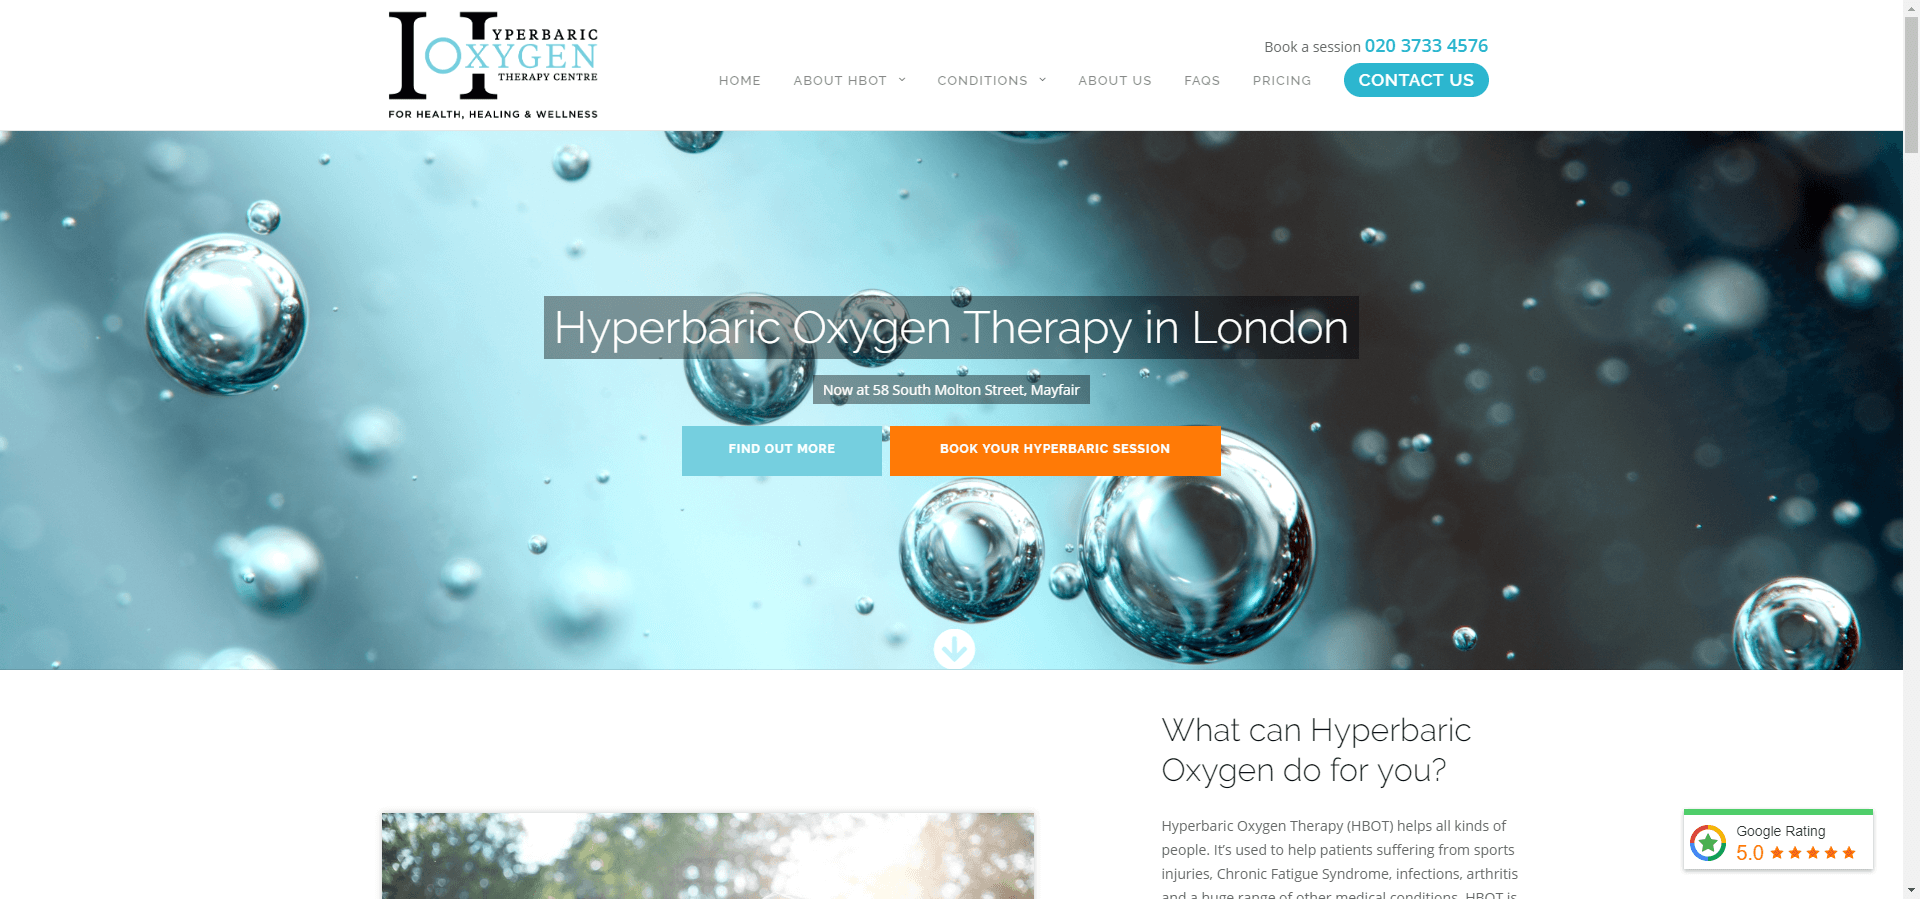 hyperbaricoxygentherapy.co.uk